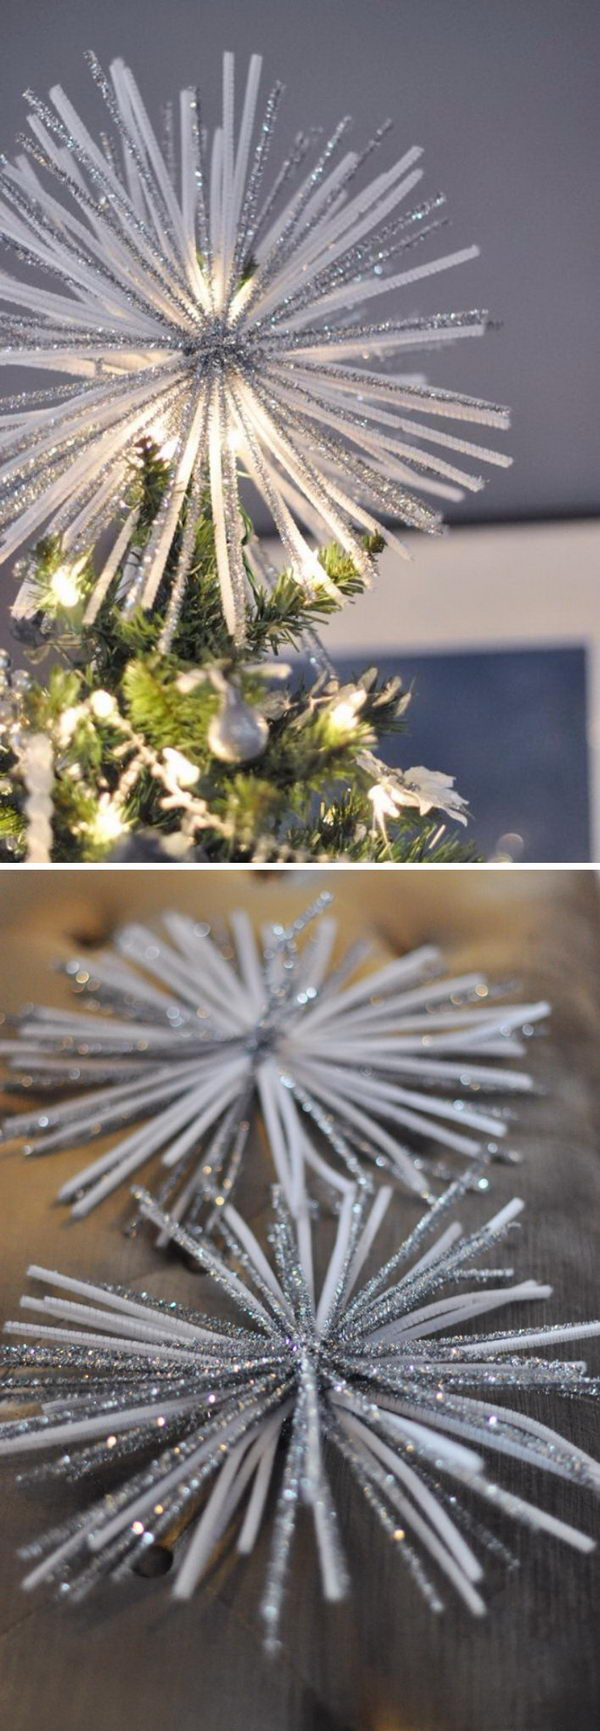 Starburst Tree Topper out of Pipe Cleaners.